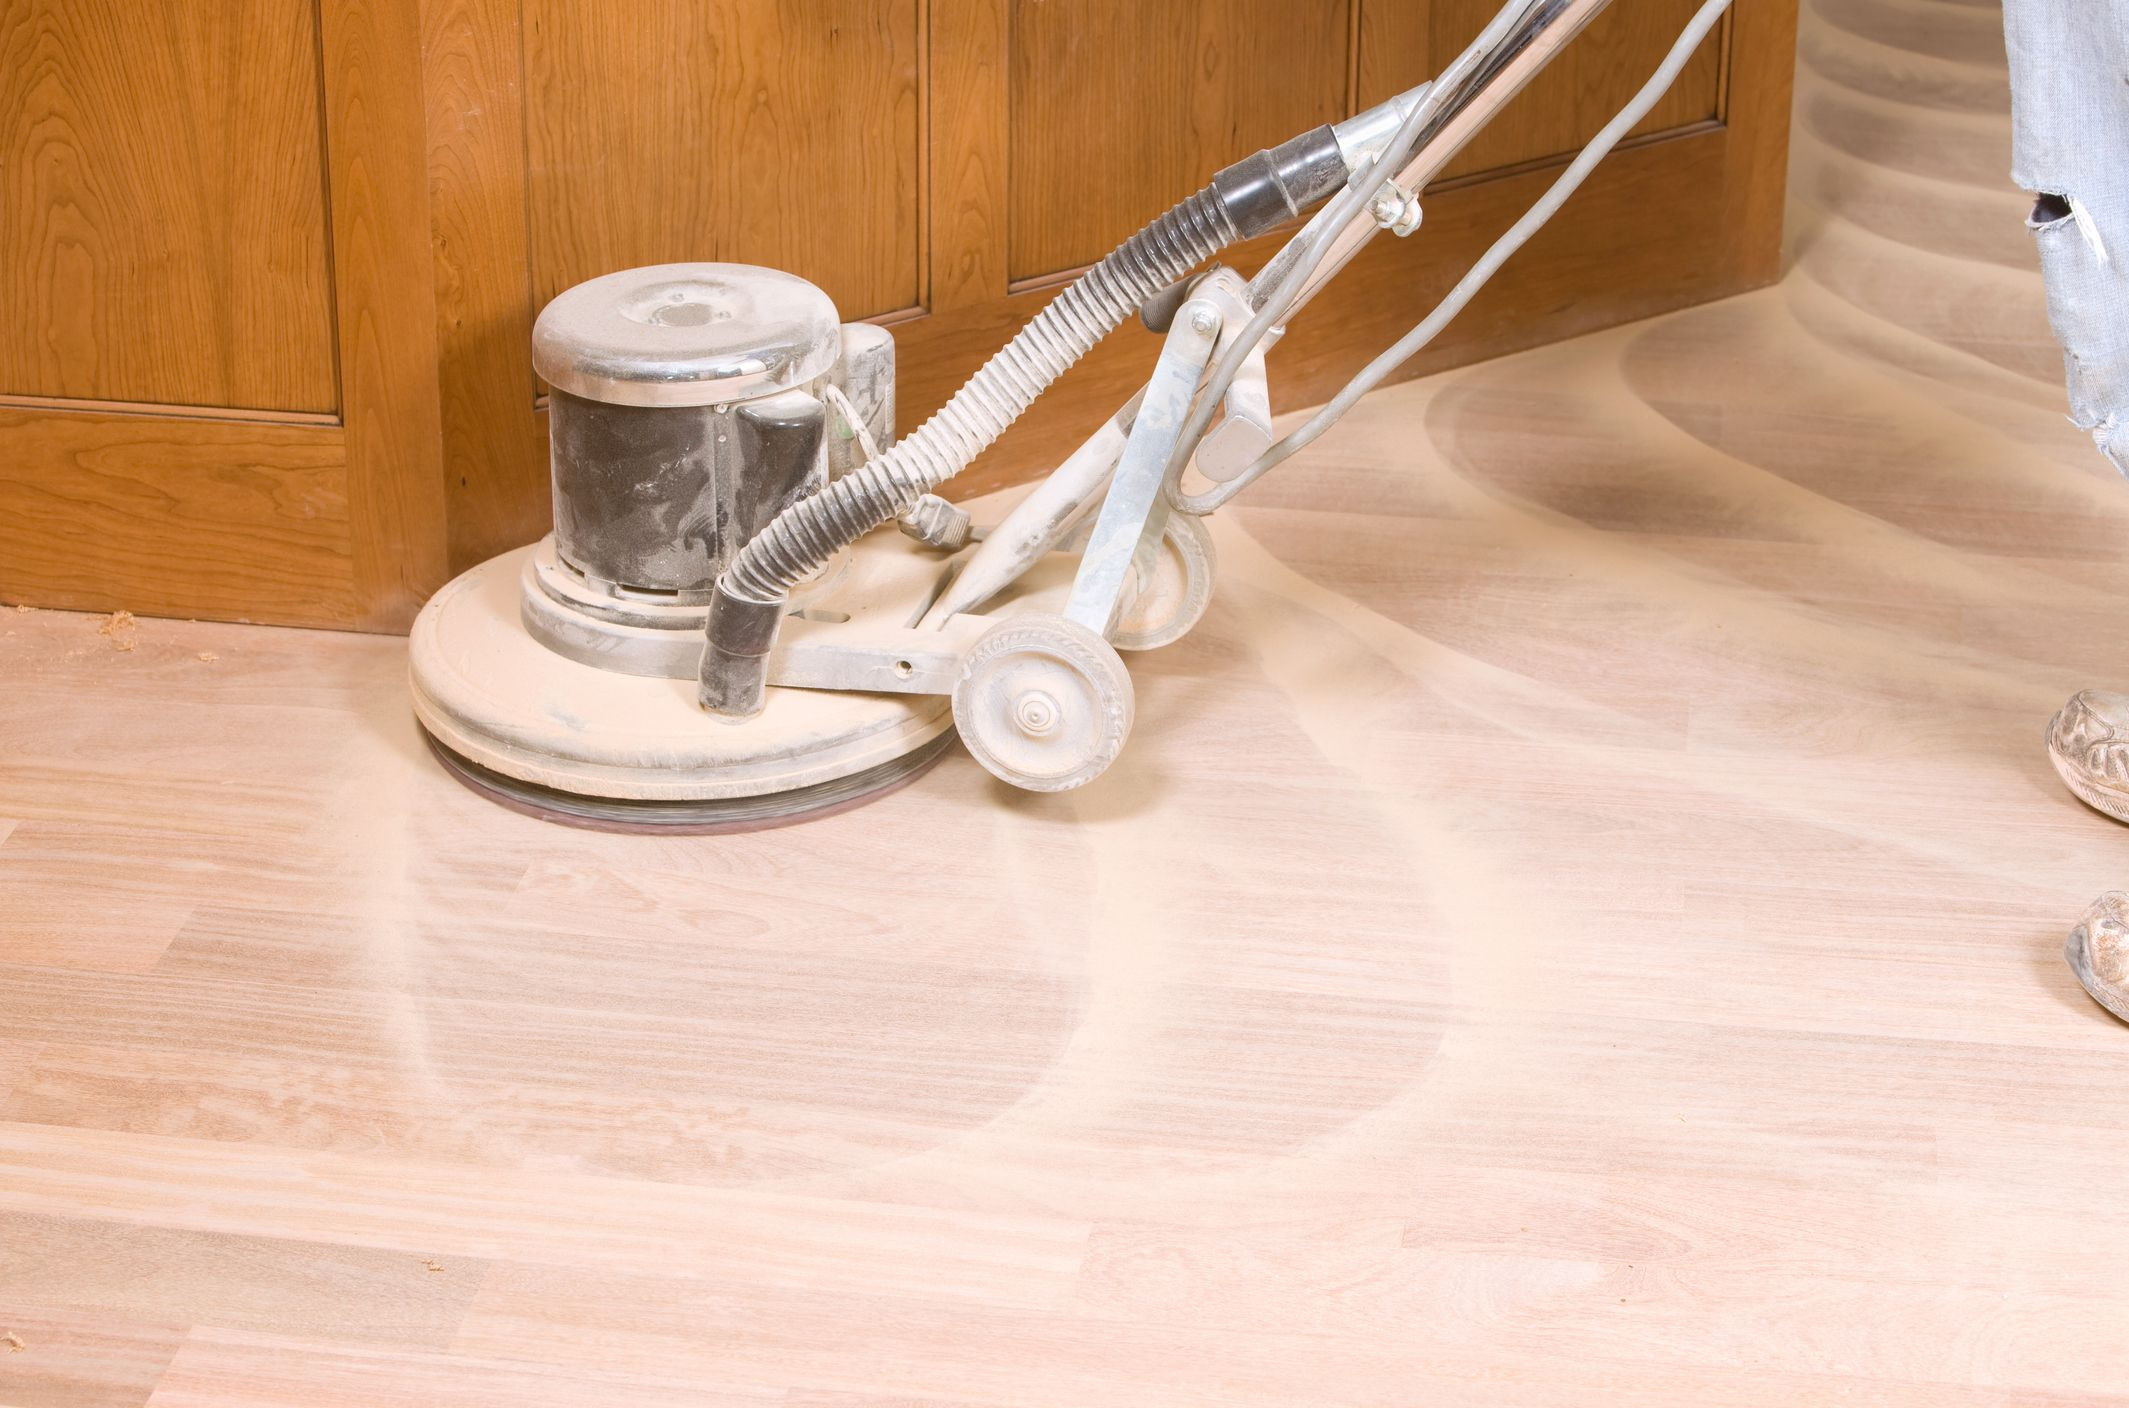 Types Of Sanders for Hardwood Floors Of Types Of Electric Sanders for Your Remodel Project Pertaining to Gettyimages 183768766 587b01a45f9b584db3a5315f